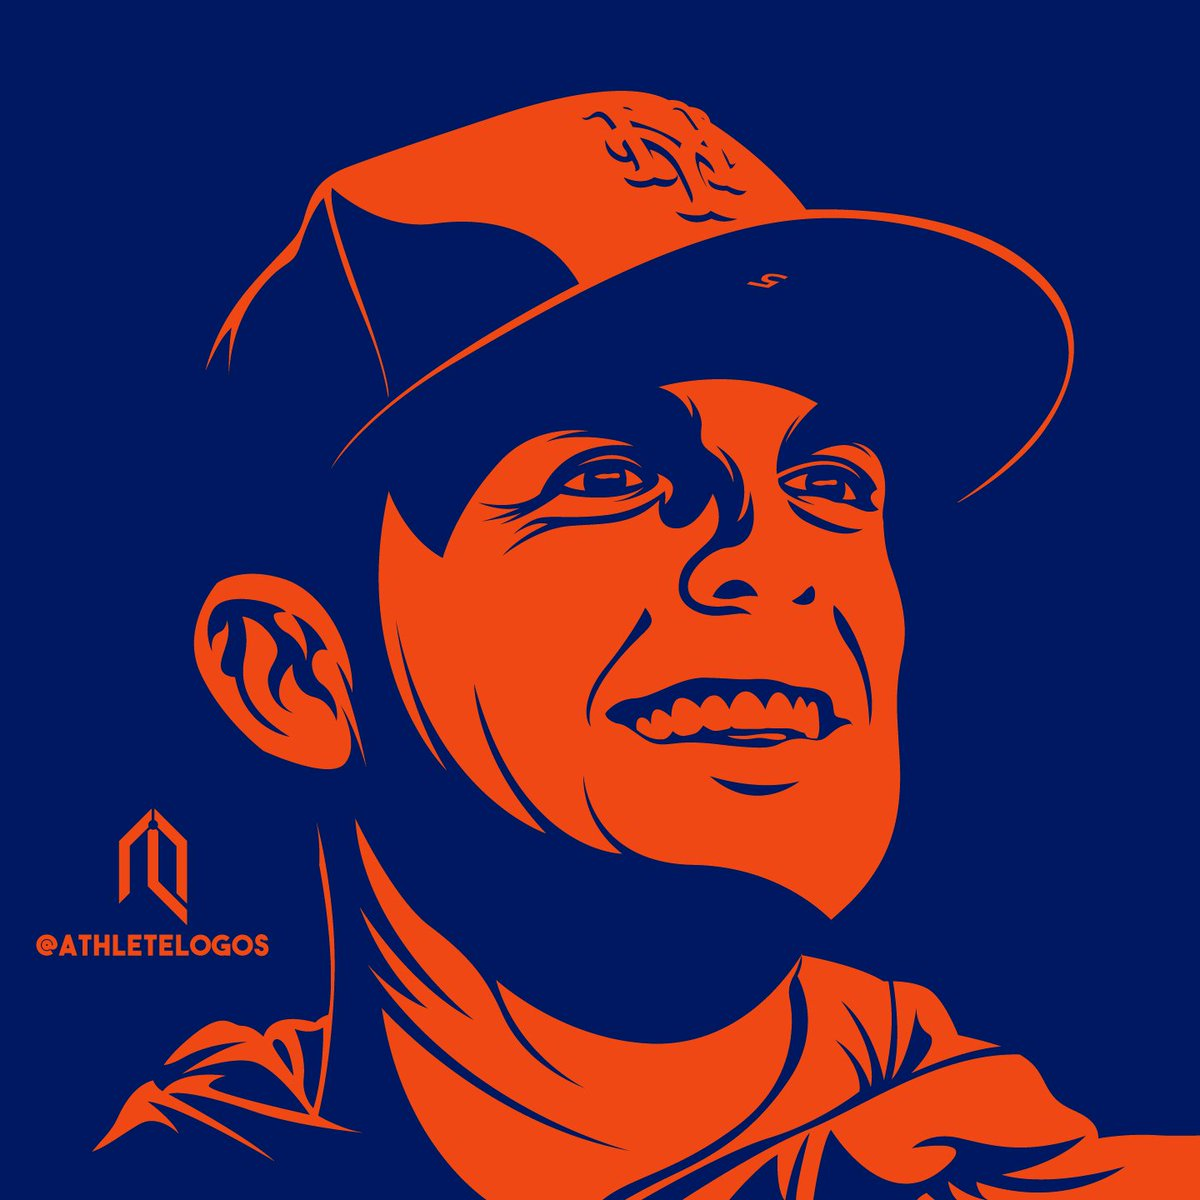 One color portrait of The Captain. @Mets #LGM  #Mets #DavidWright @spidadmitchell @dylanobrien<br>http://pic.twitter.com/bECZyhaszq